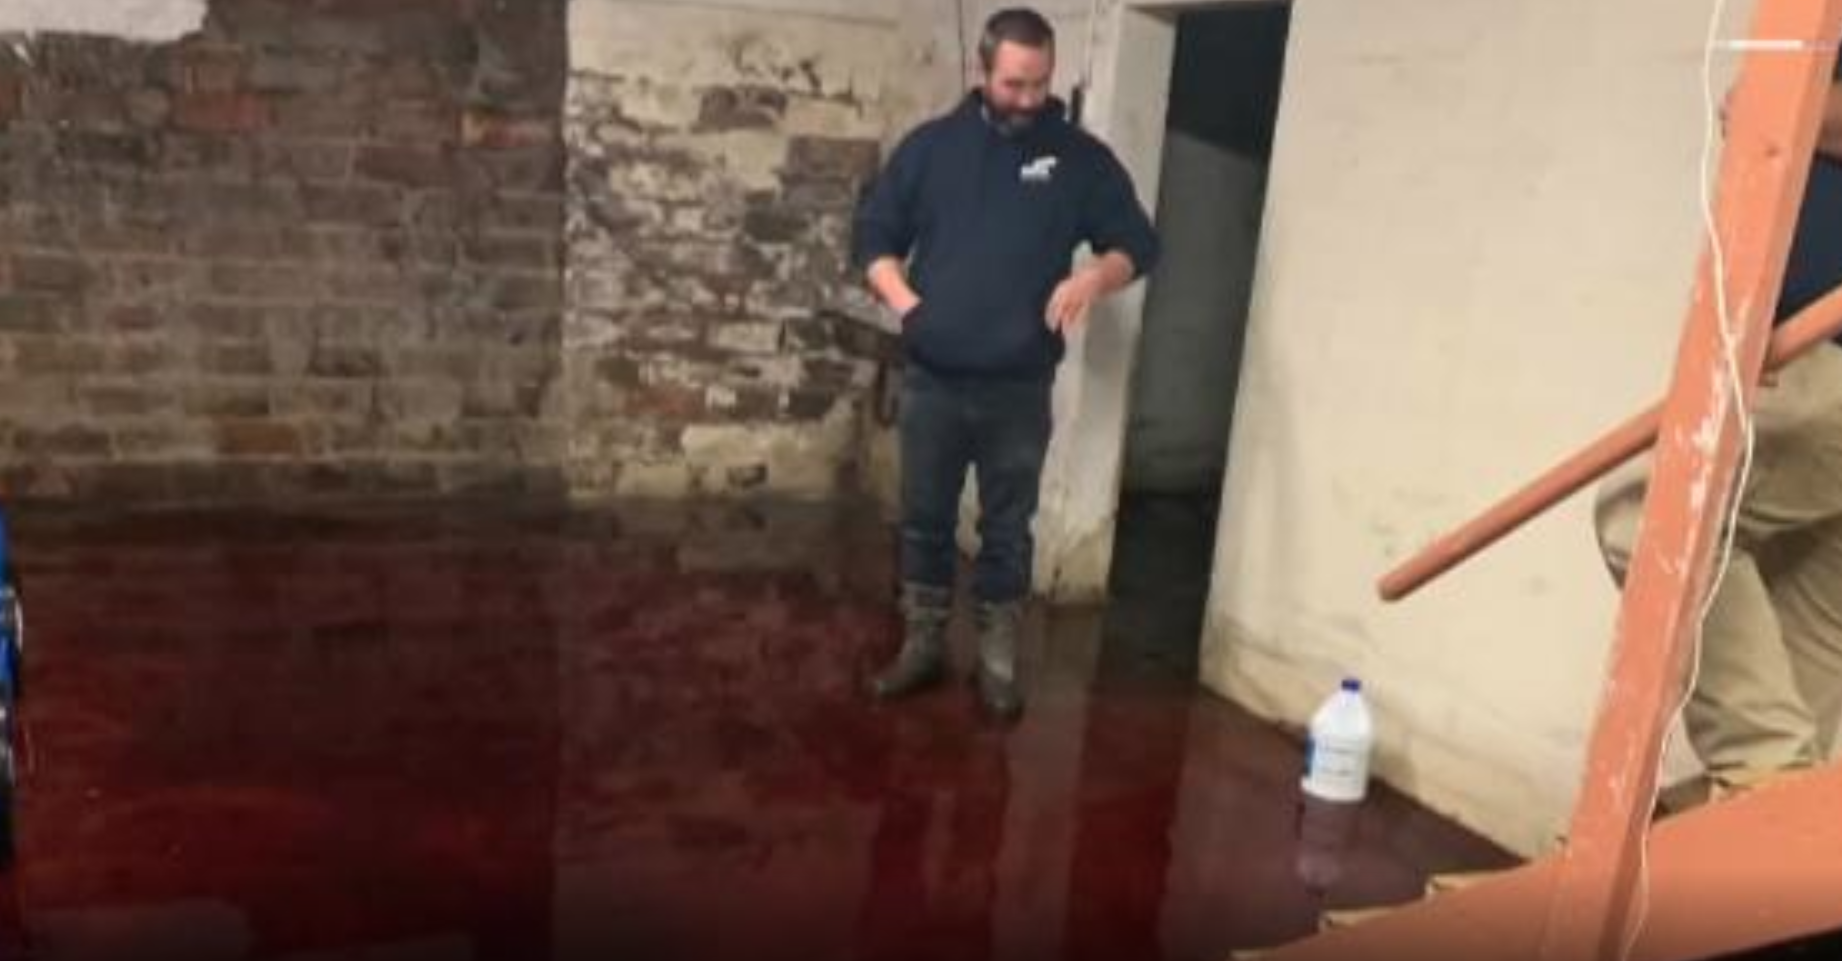 A family's basement is flooded with blood that seeped in from a nearby slaughterhouse in Iowa. (Credit: WHO-DT via CNN)